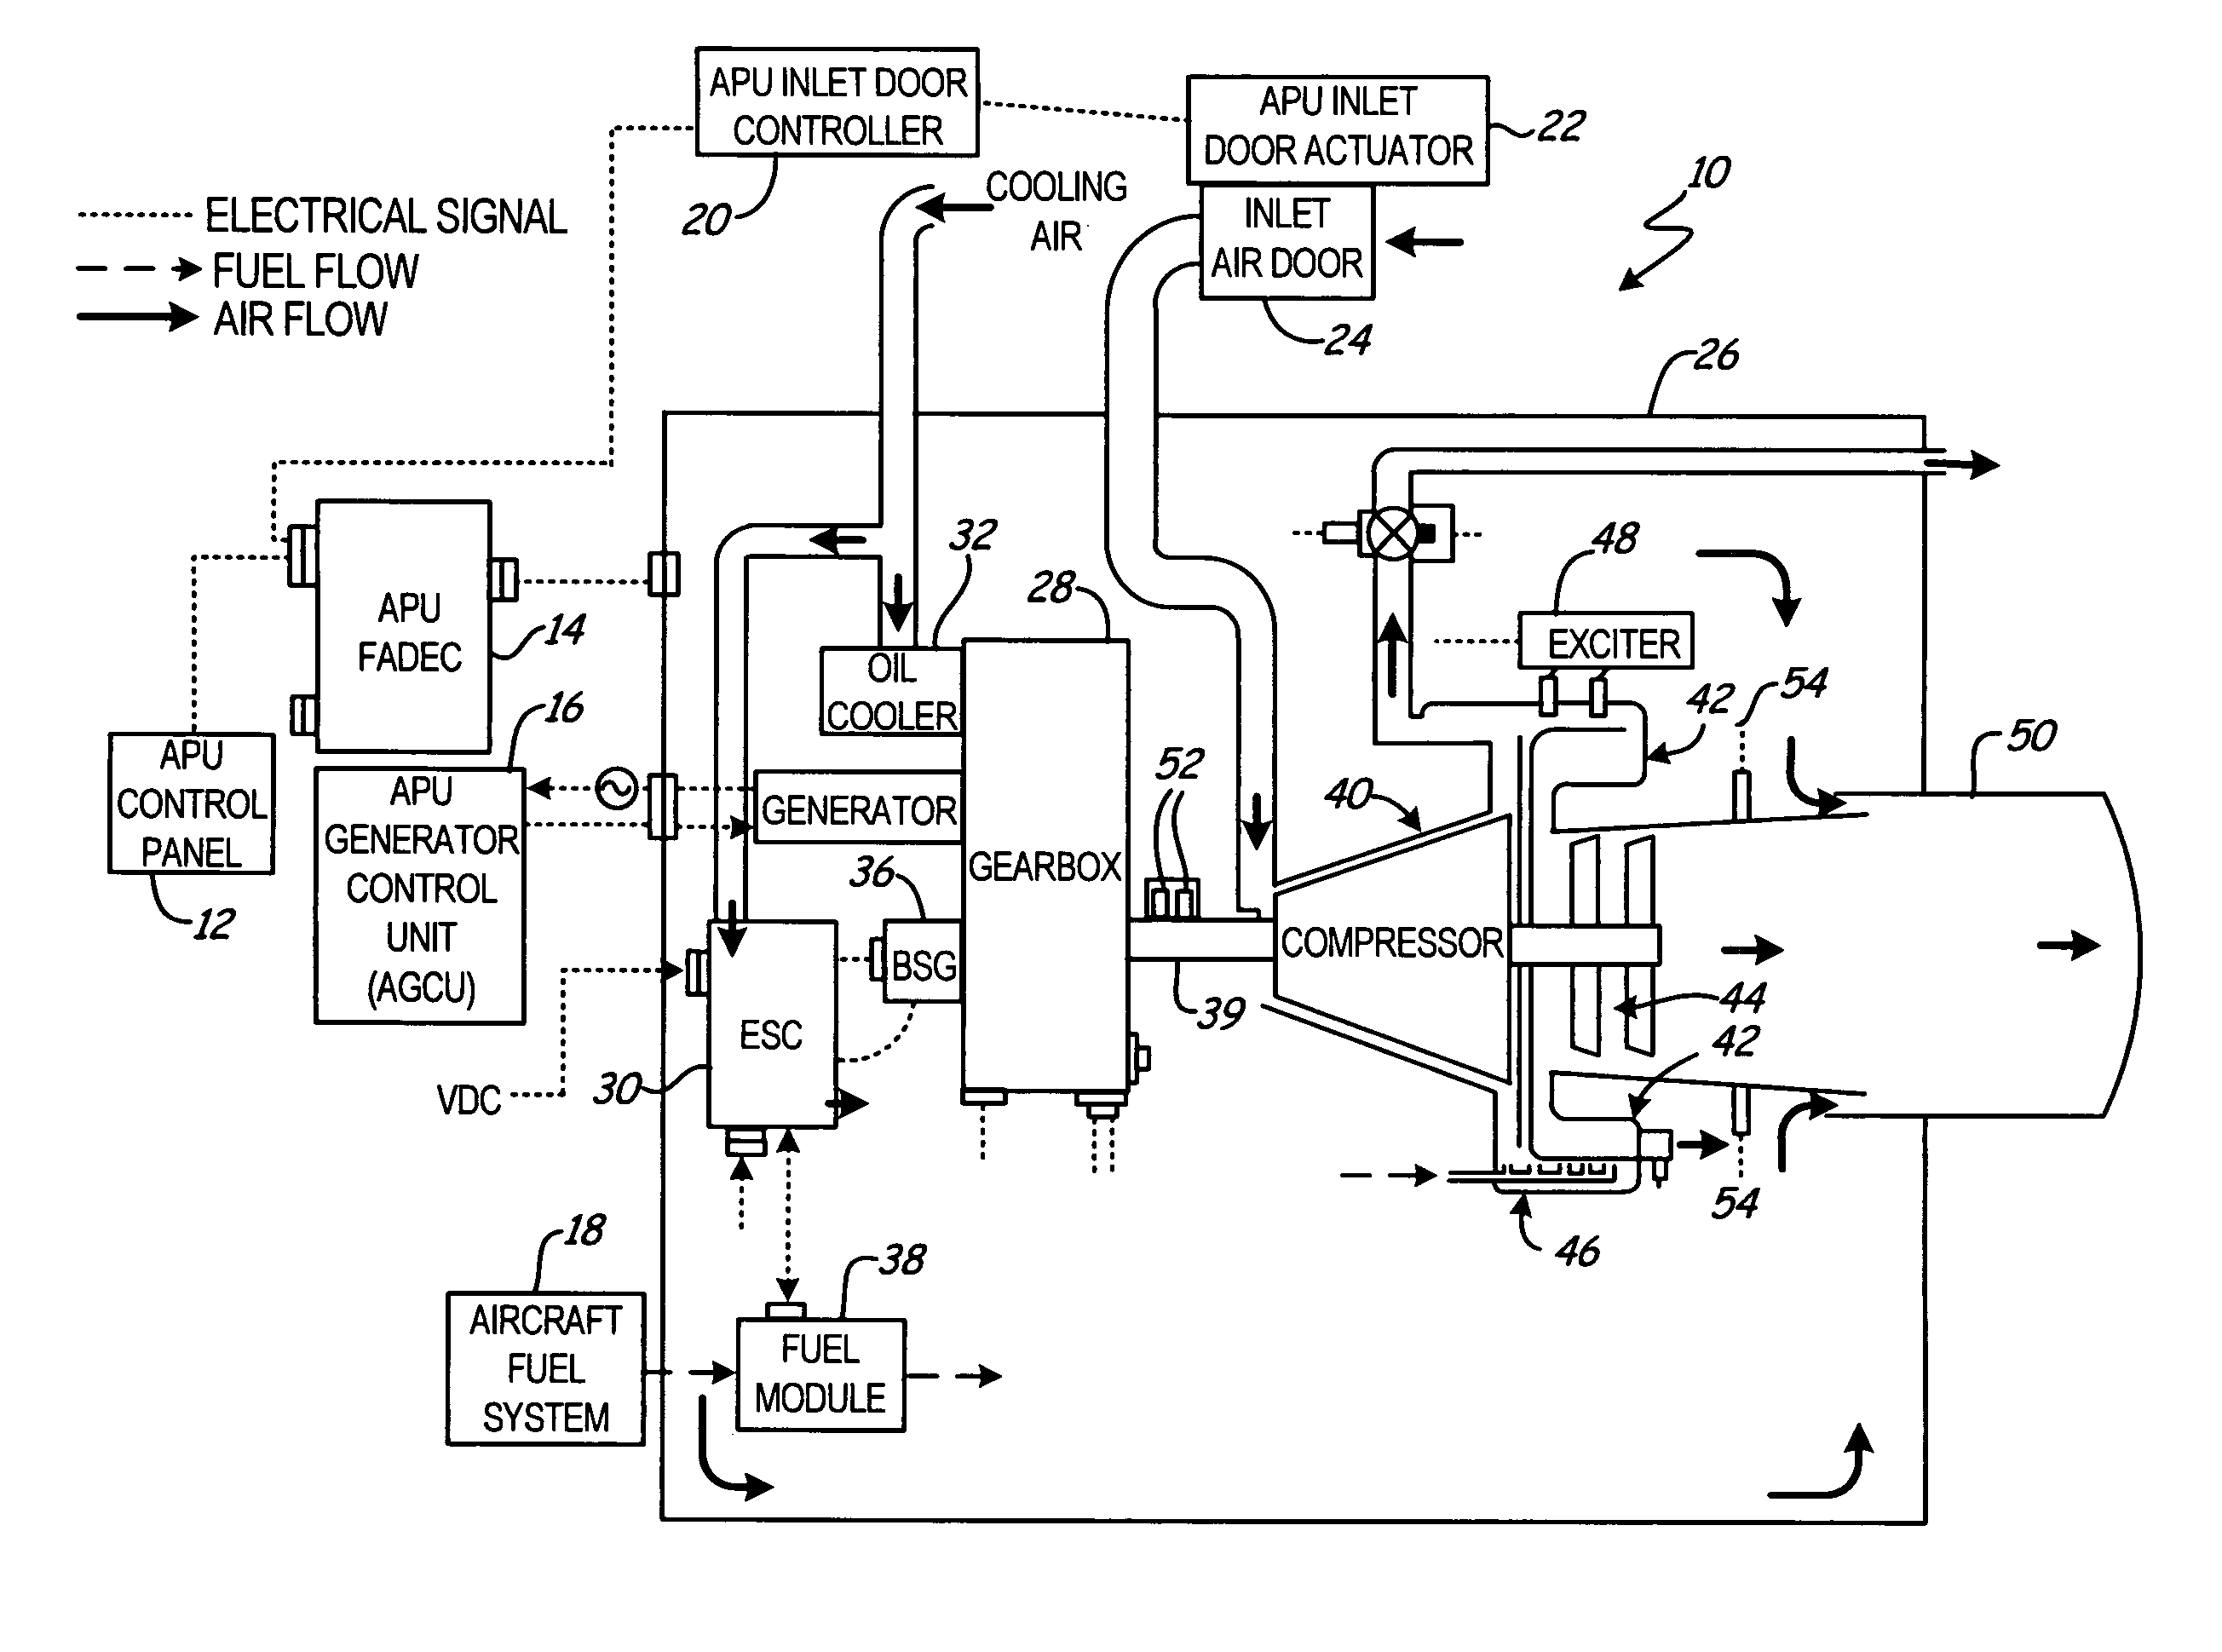 Patent US Gas turbine starting with stepping speed